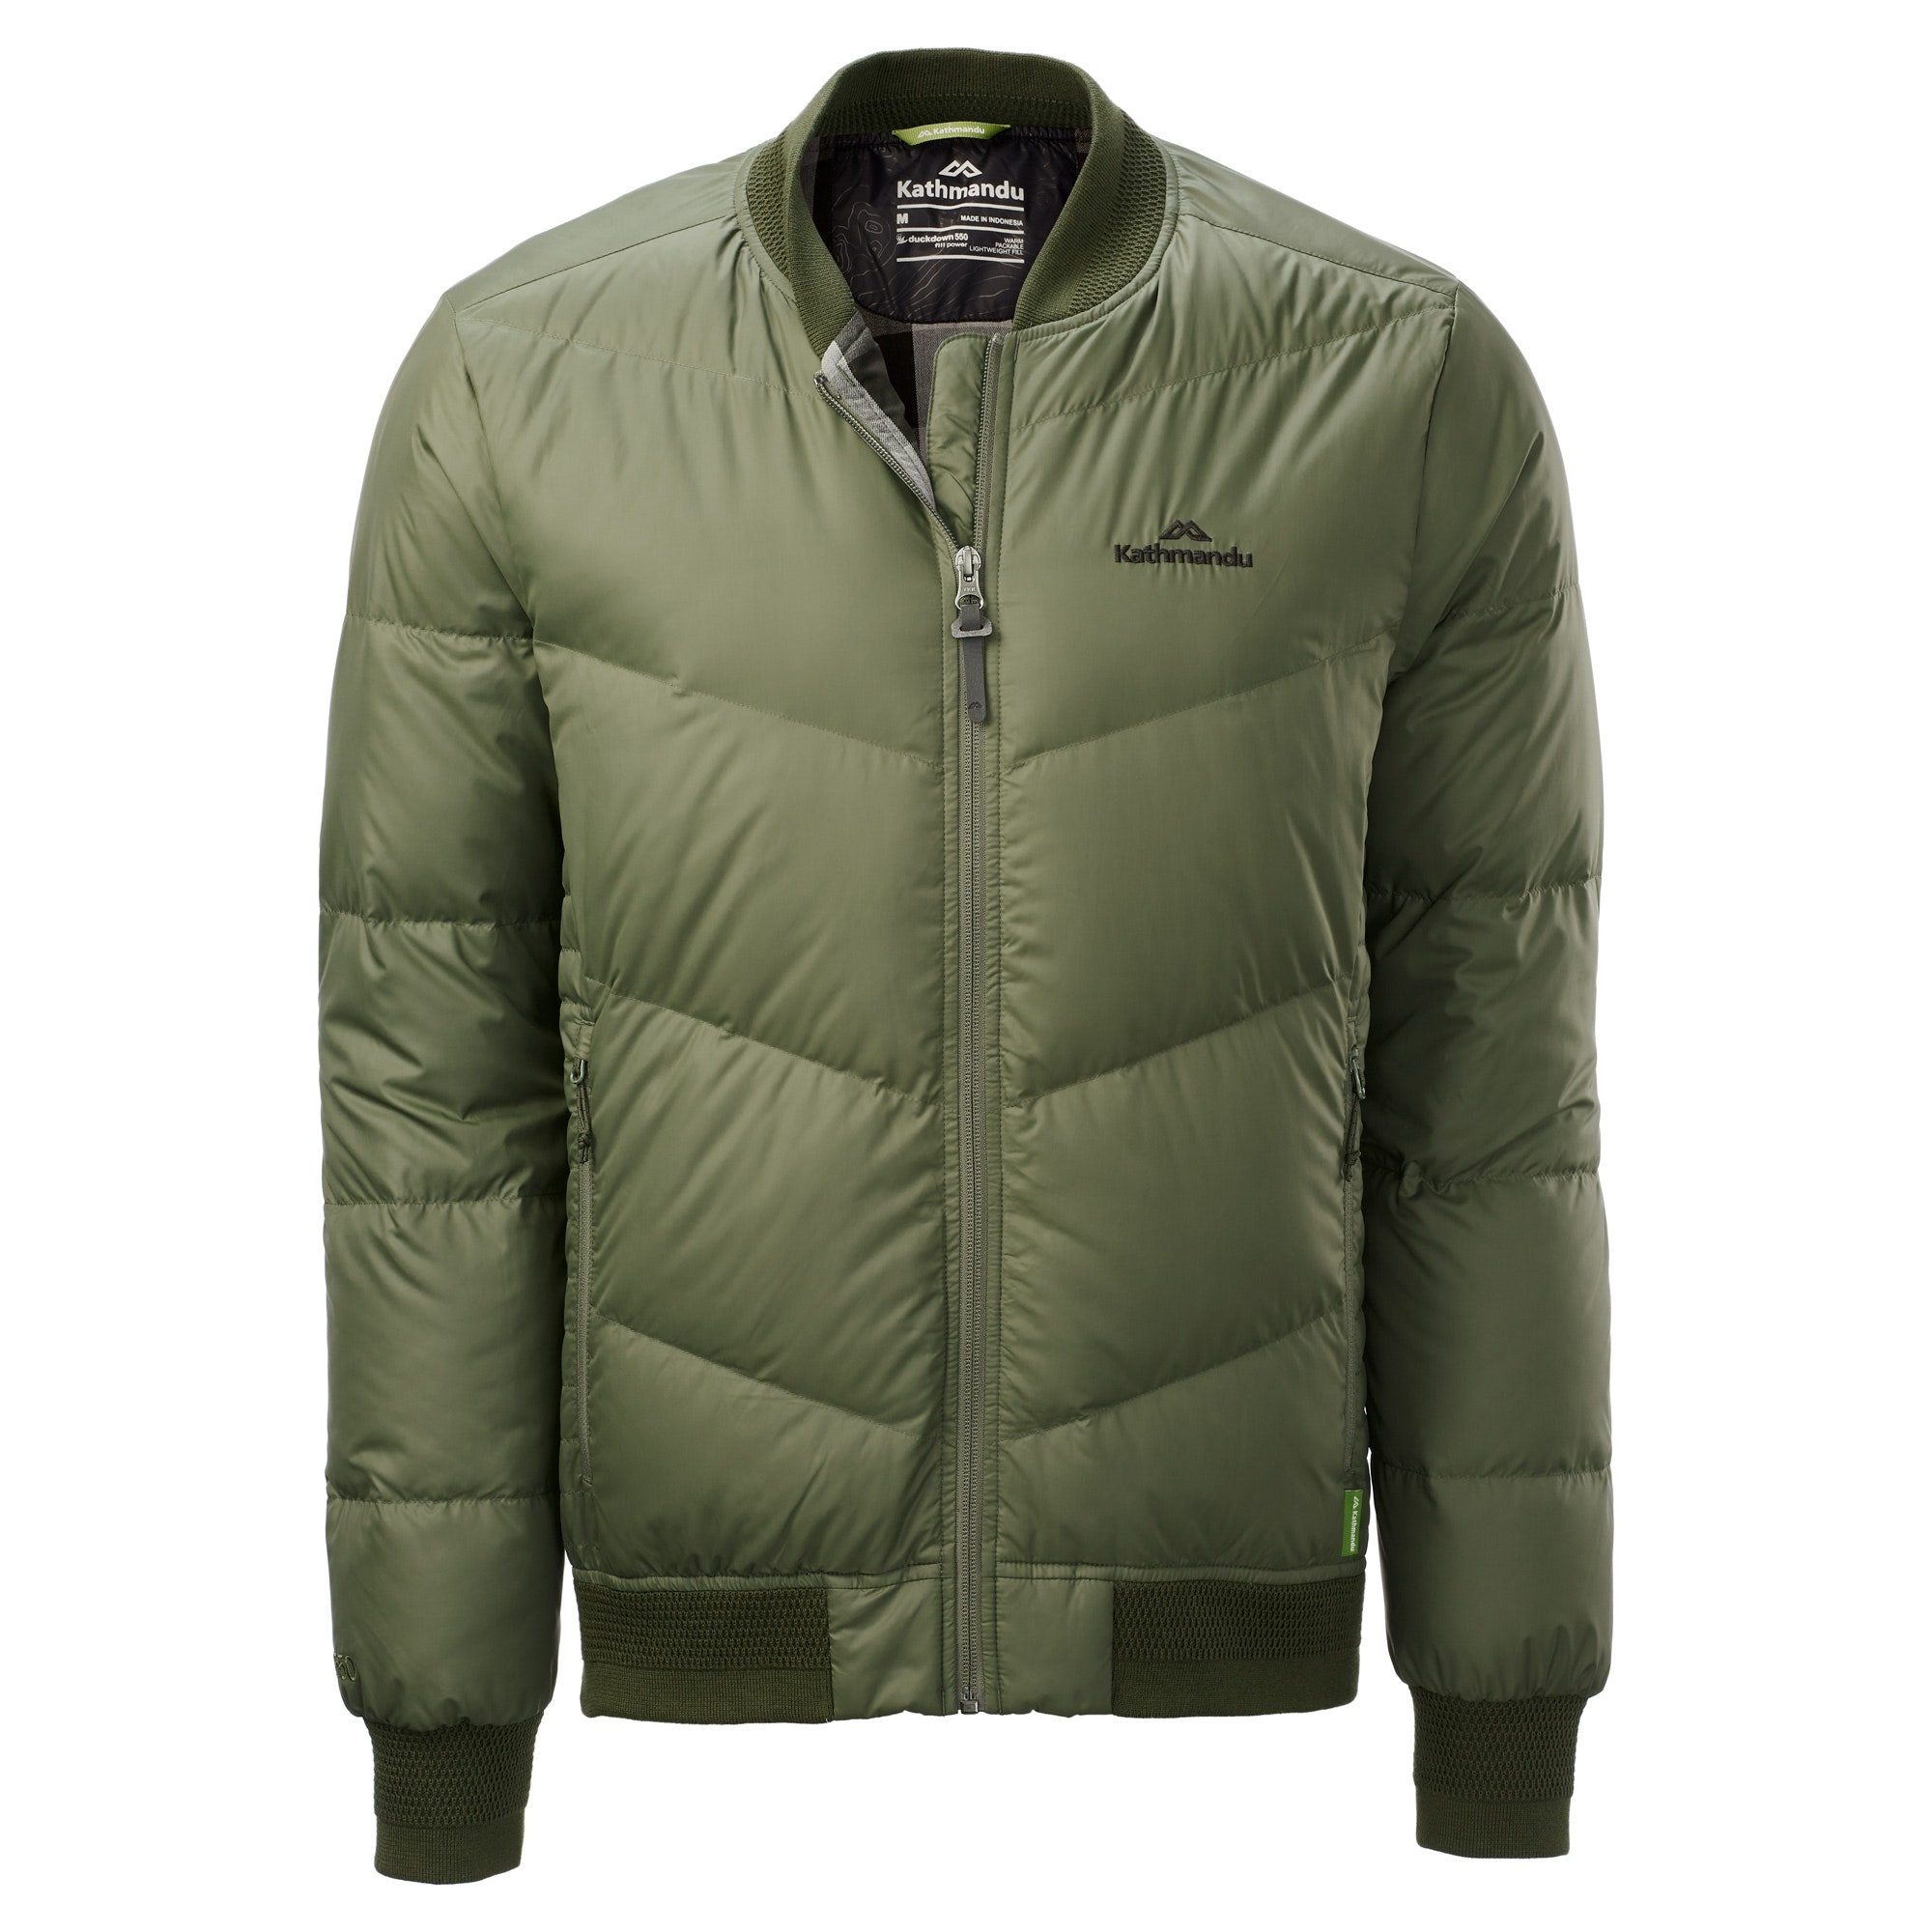 e7bd5c413 Details about NEW Kathmandu Federate Men's Down Bomber Jacket